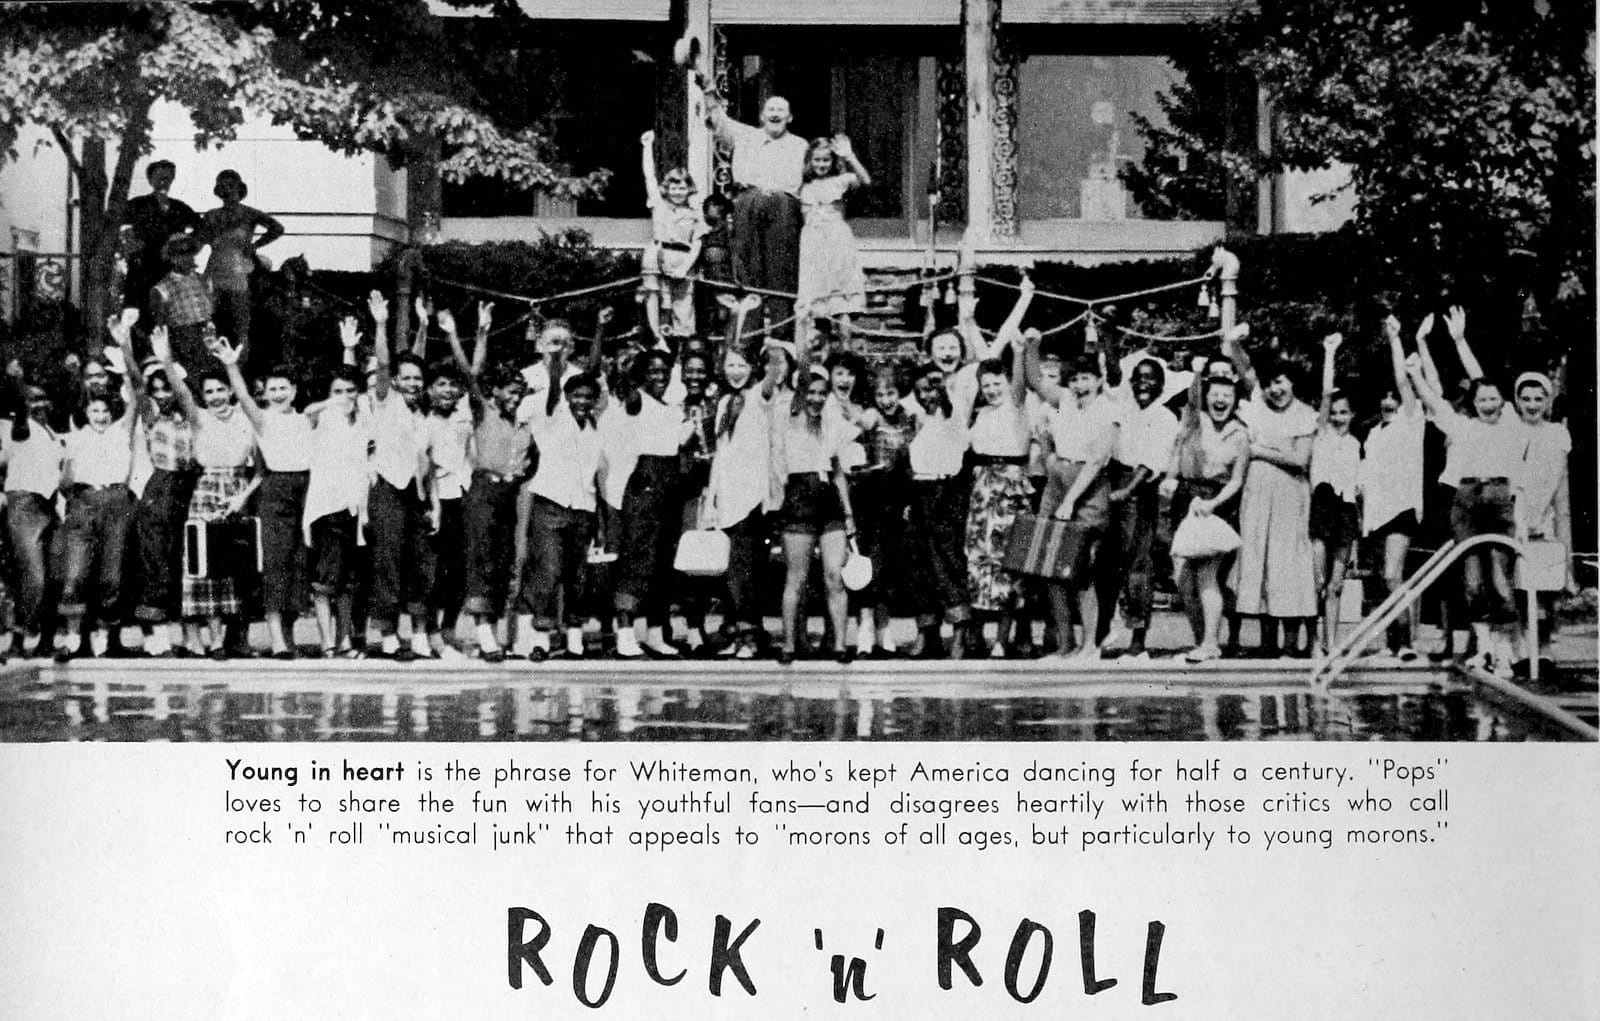 A look back at rock music from 1956 (5)